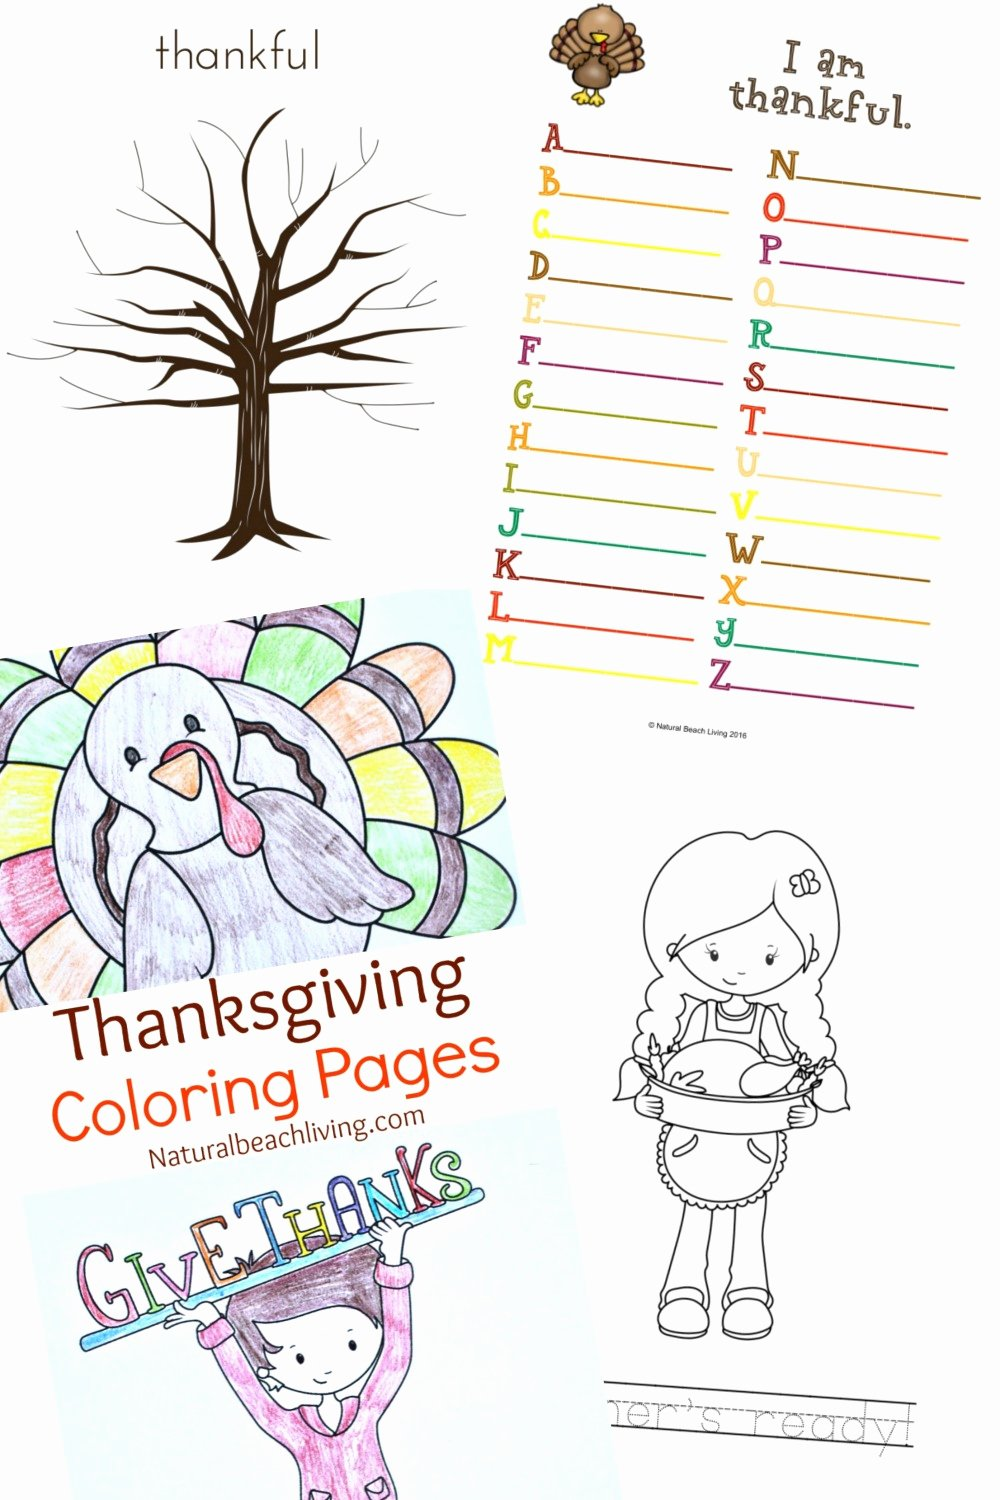 Thankful Worksheets for Preschoolers New Thanksgiving Printables for Kids Natural Beach Living